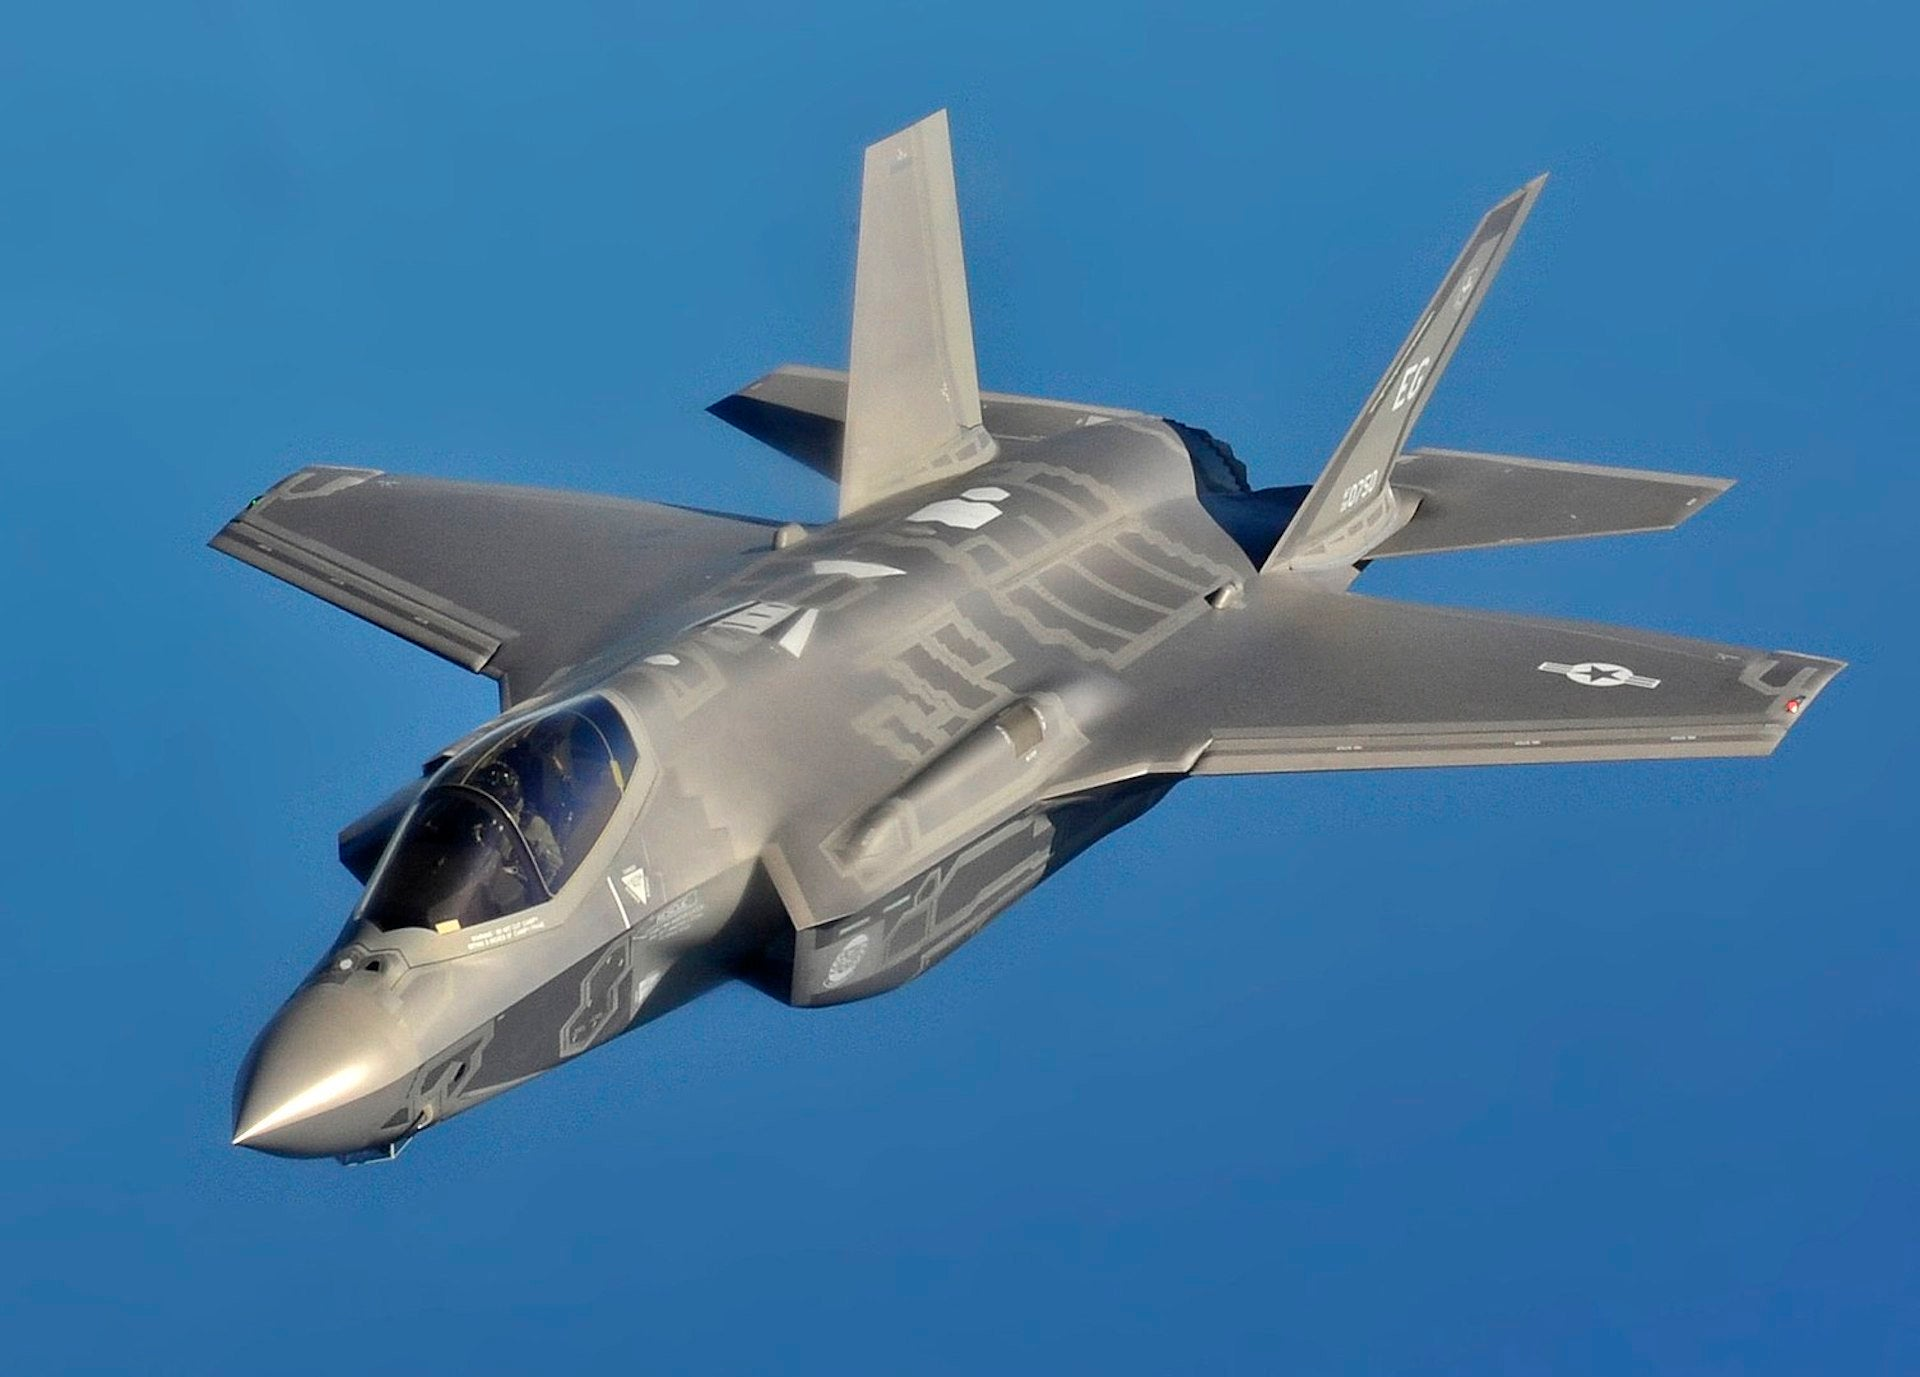 The Lockheed Martin USAF F-35A Lightning II stealth fighter is a symbol of the military-industrial complex and its impact on anti-Chinese sentiment in America. Photo © Master Sgt. Donald R. Allen / US Air Force, in the public domain